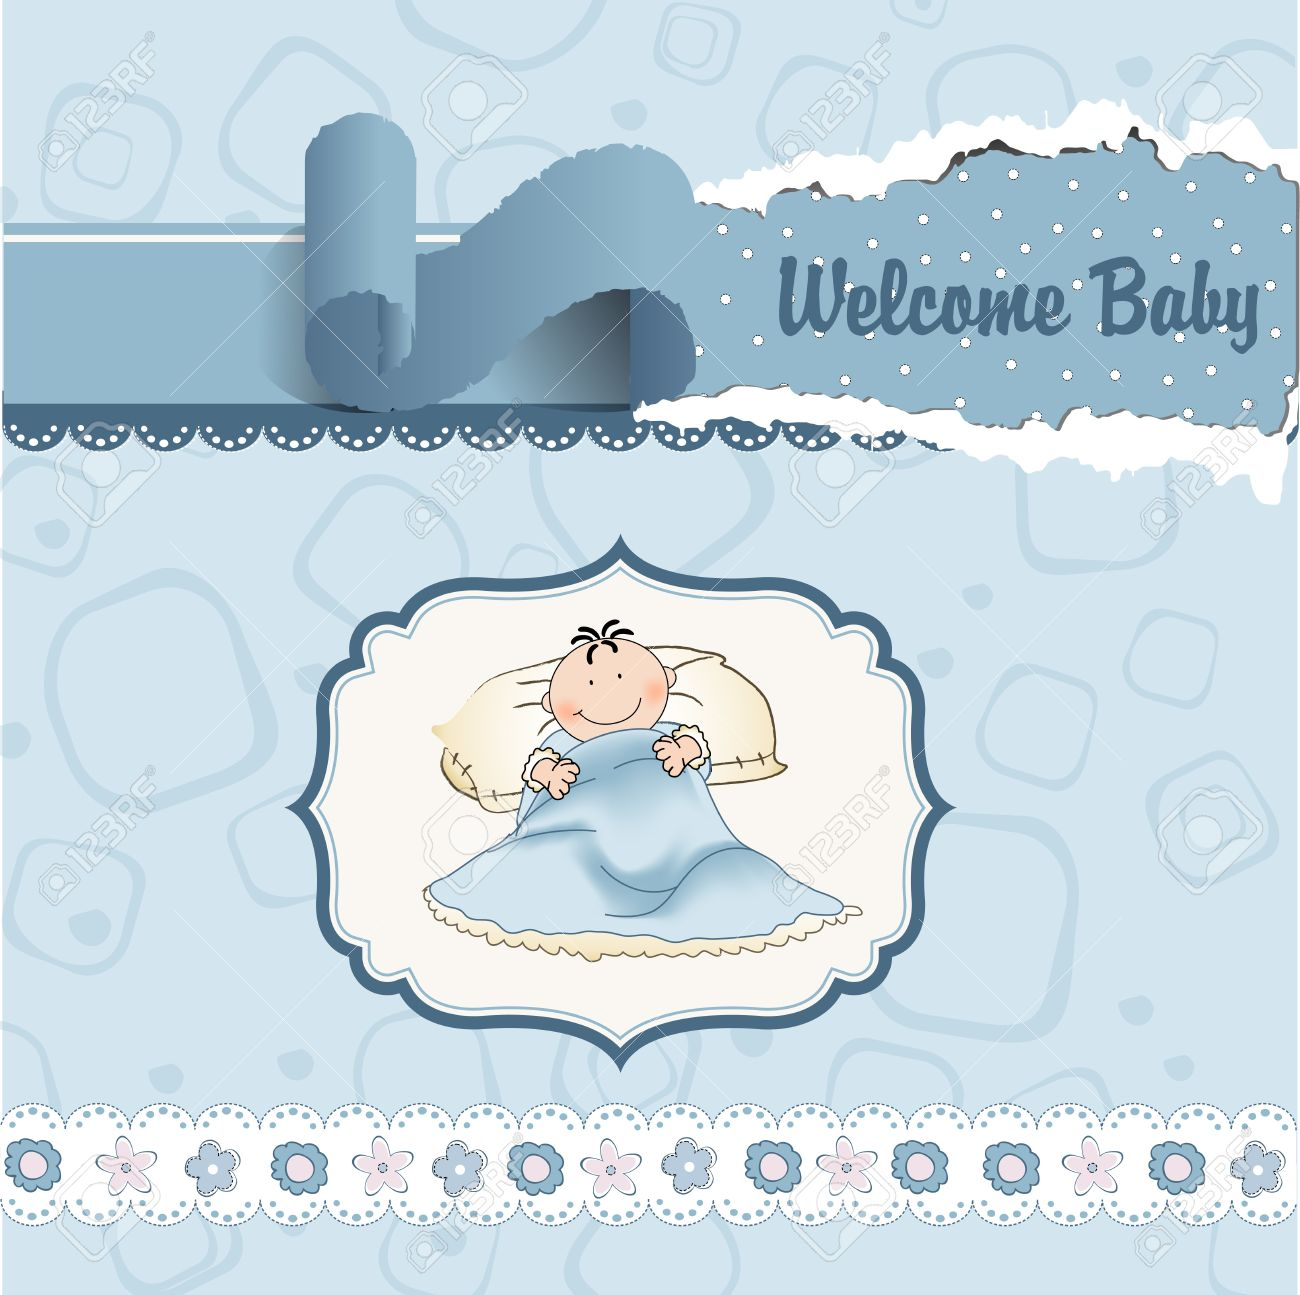 Welcome New Baby Quotes Quotations Sayings